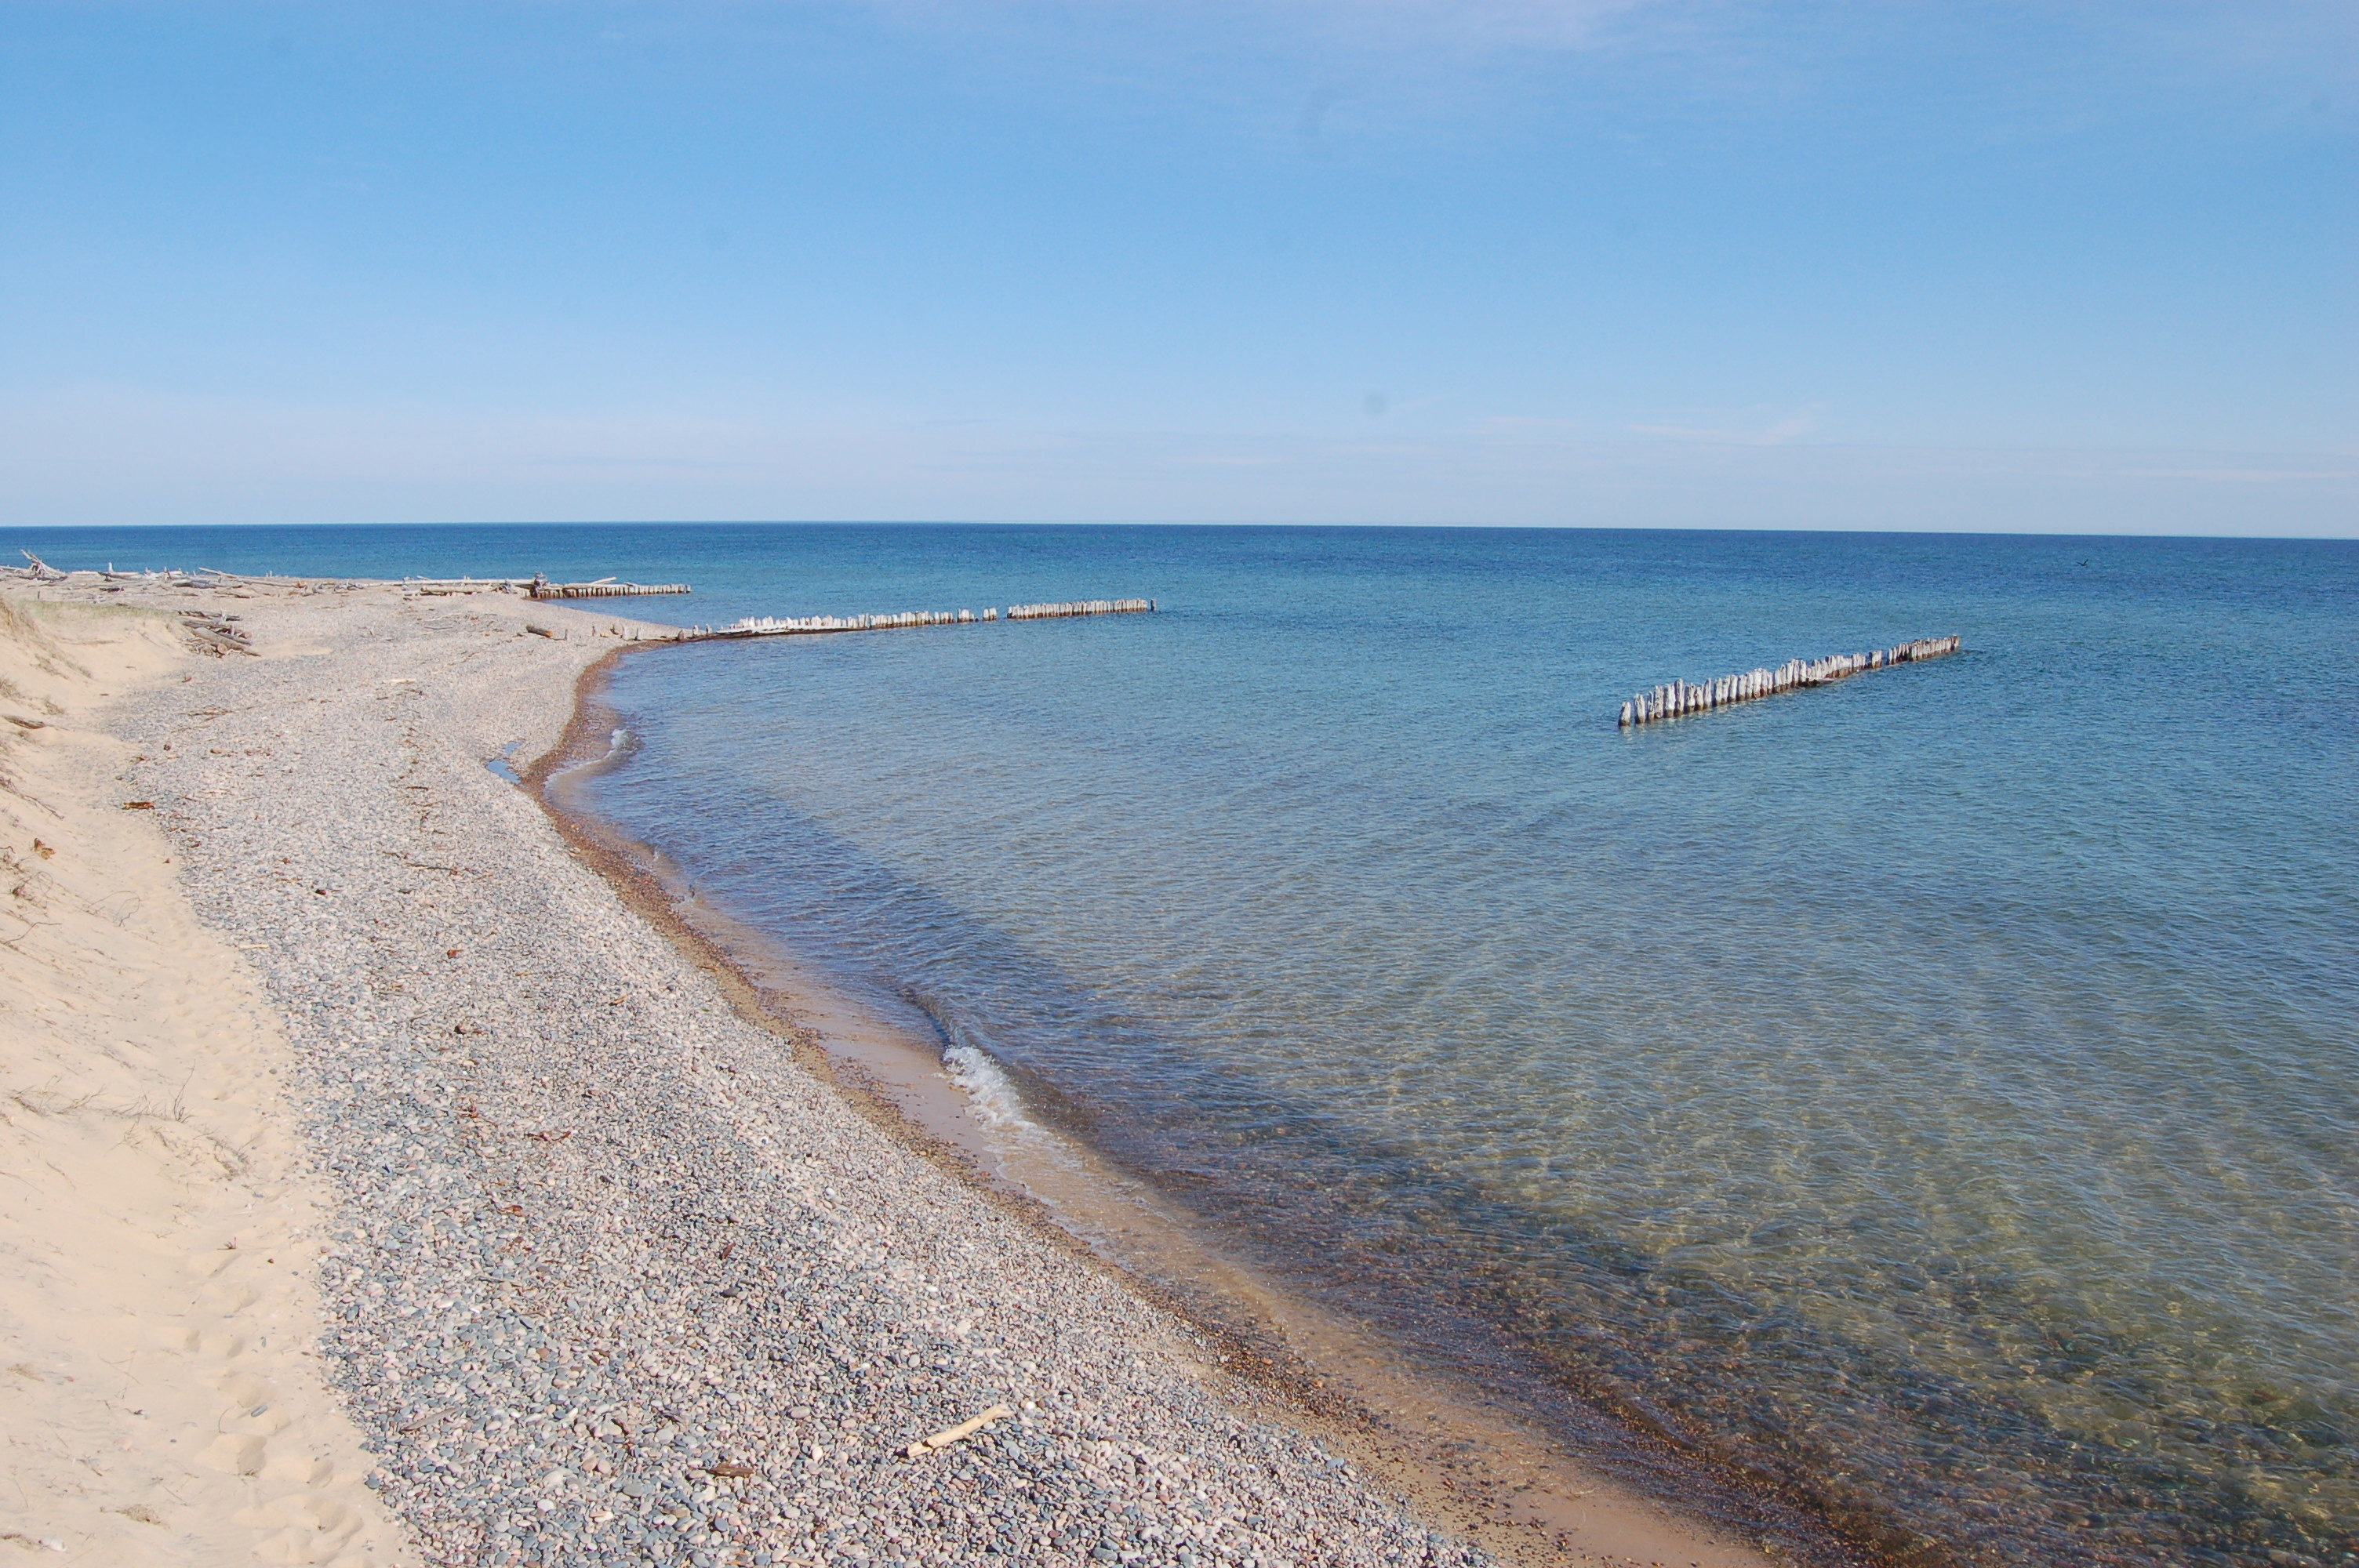 Whitefish point lighthouse and great lakes shipwreck for White fish point